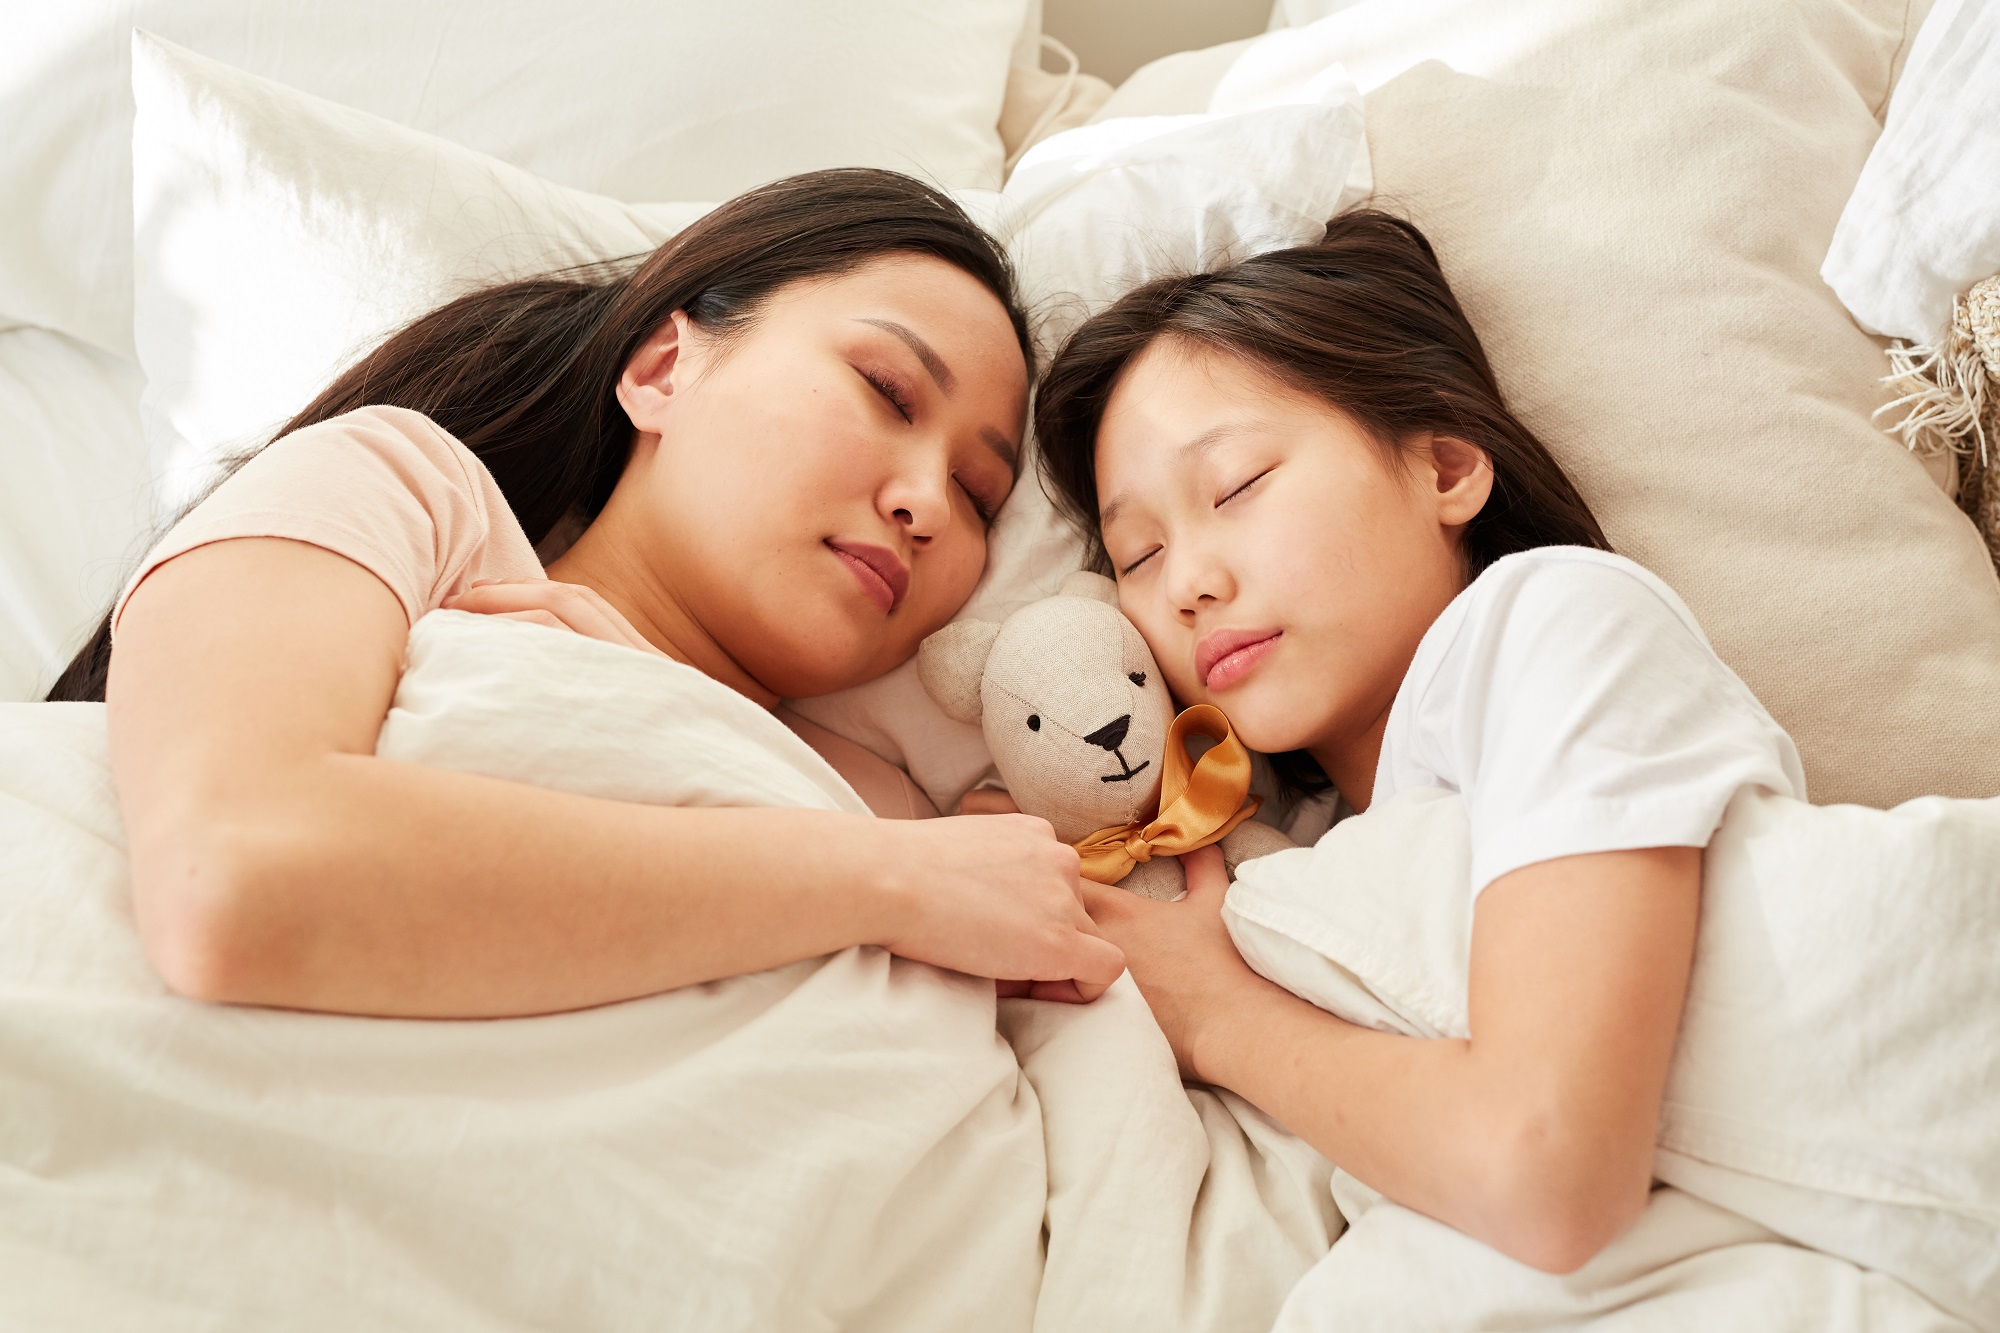 Asian mother sleeping together with her daughter in the bed in the bedroom